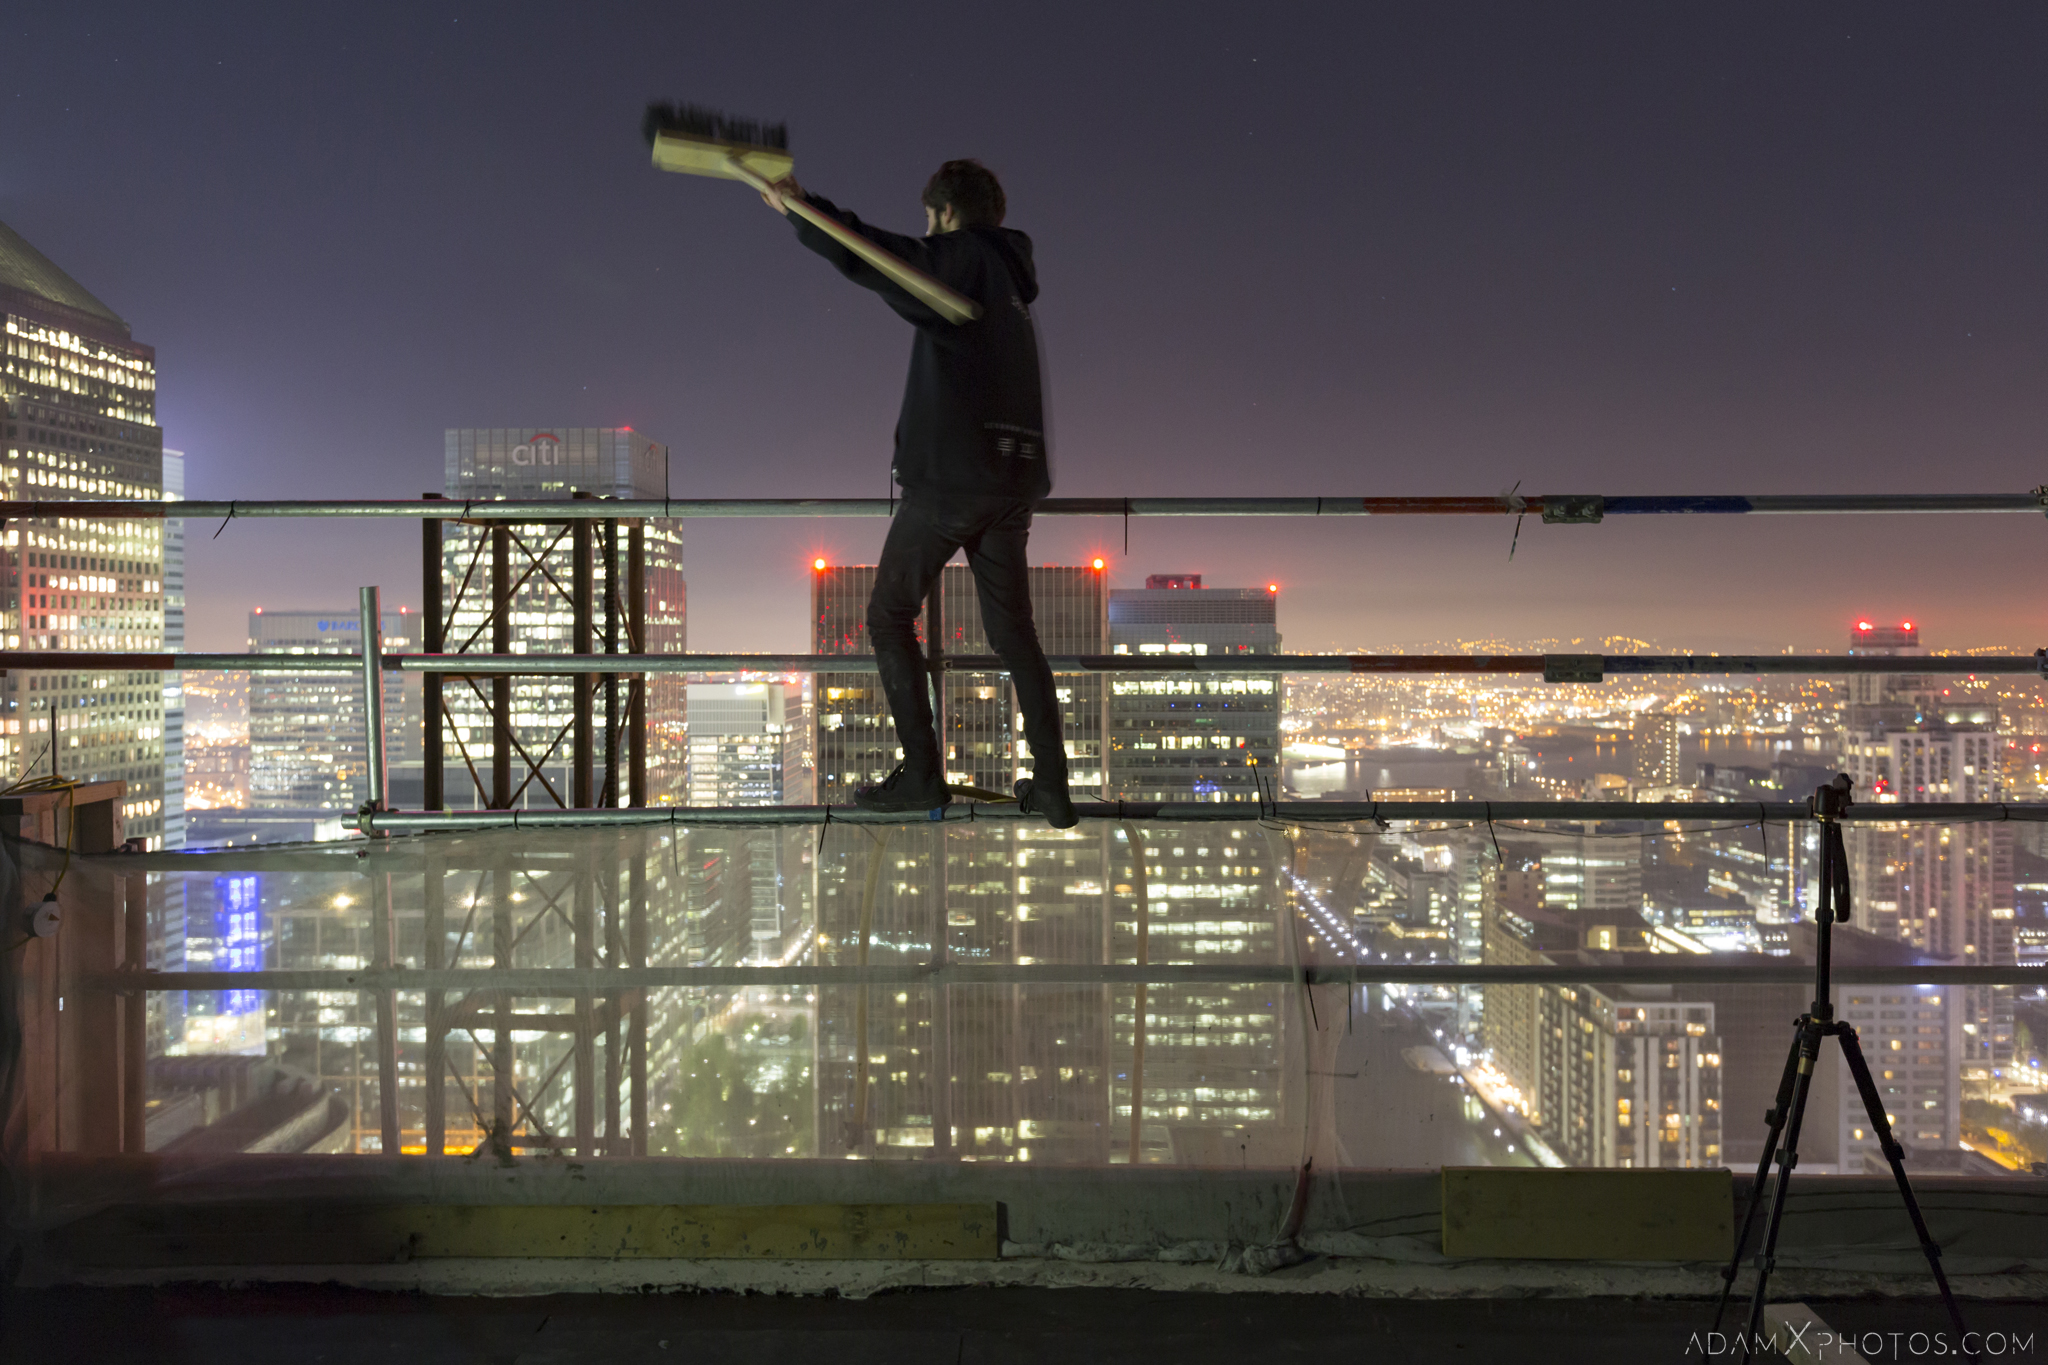 Alex Zach naughty Rooftop Rooftopping London Urbex High Adam X Urban Exploration Access 2017 Abandoned decay lost forgotten derelict location dangerous night nightttime